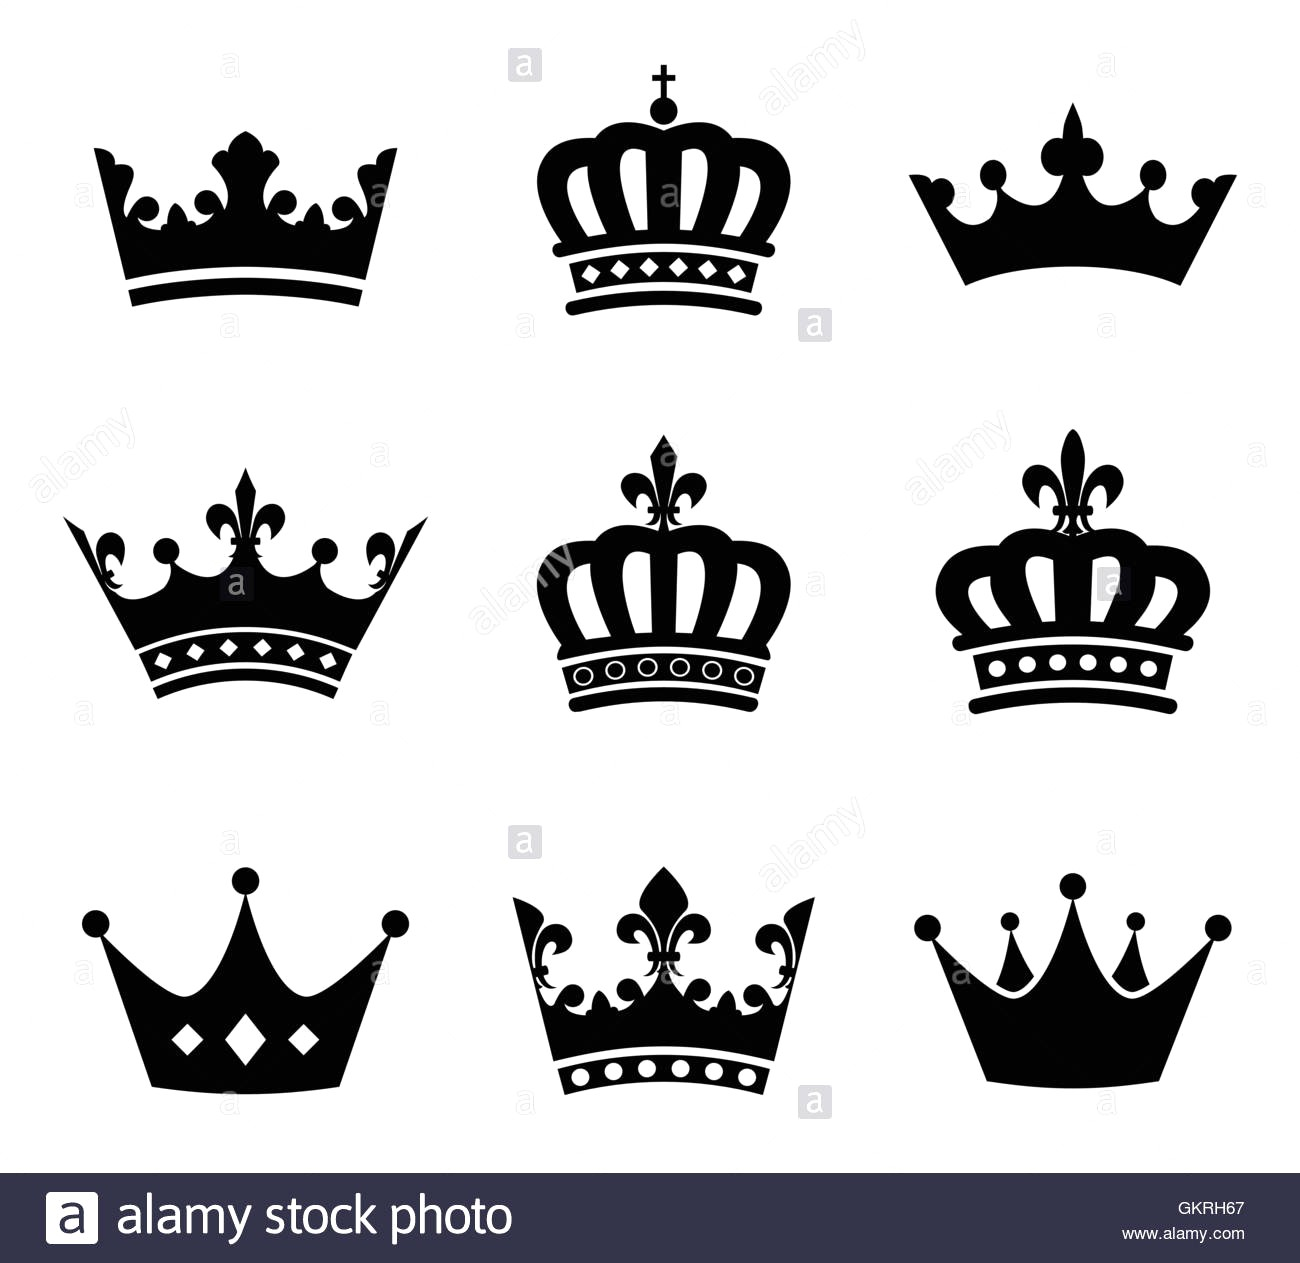 King And Queen Crown Vector at GetDrawings.com.